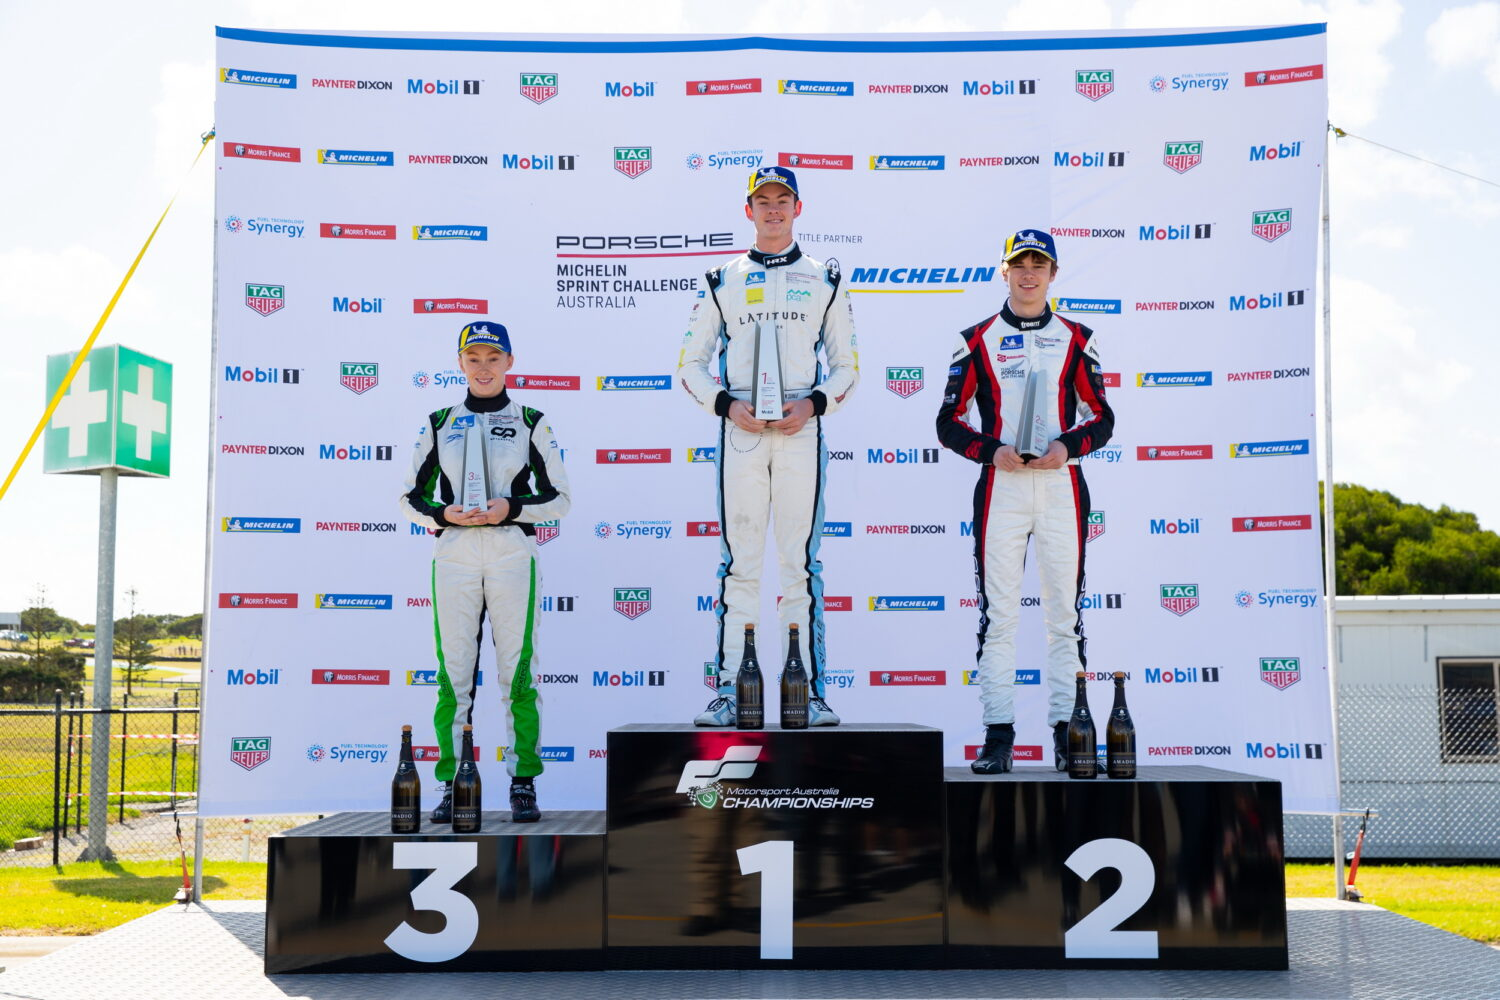 Winning drivers on the podium, with Courtney in third position. Porsche Michelin Sprint Challenge at Phillip Island, March 2021.